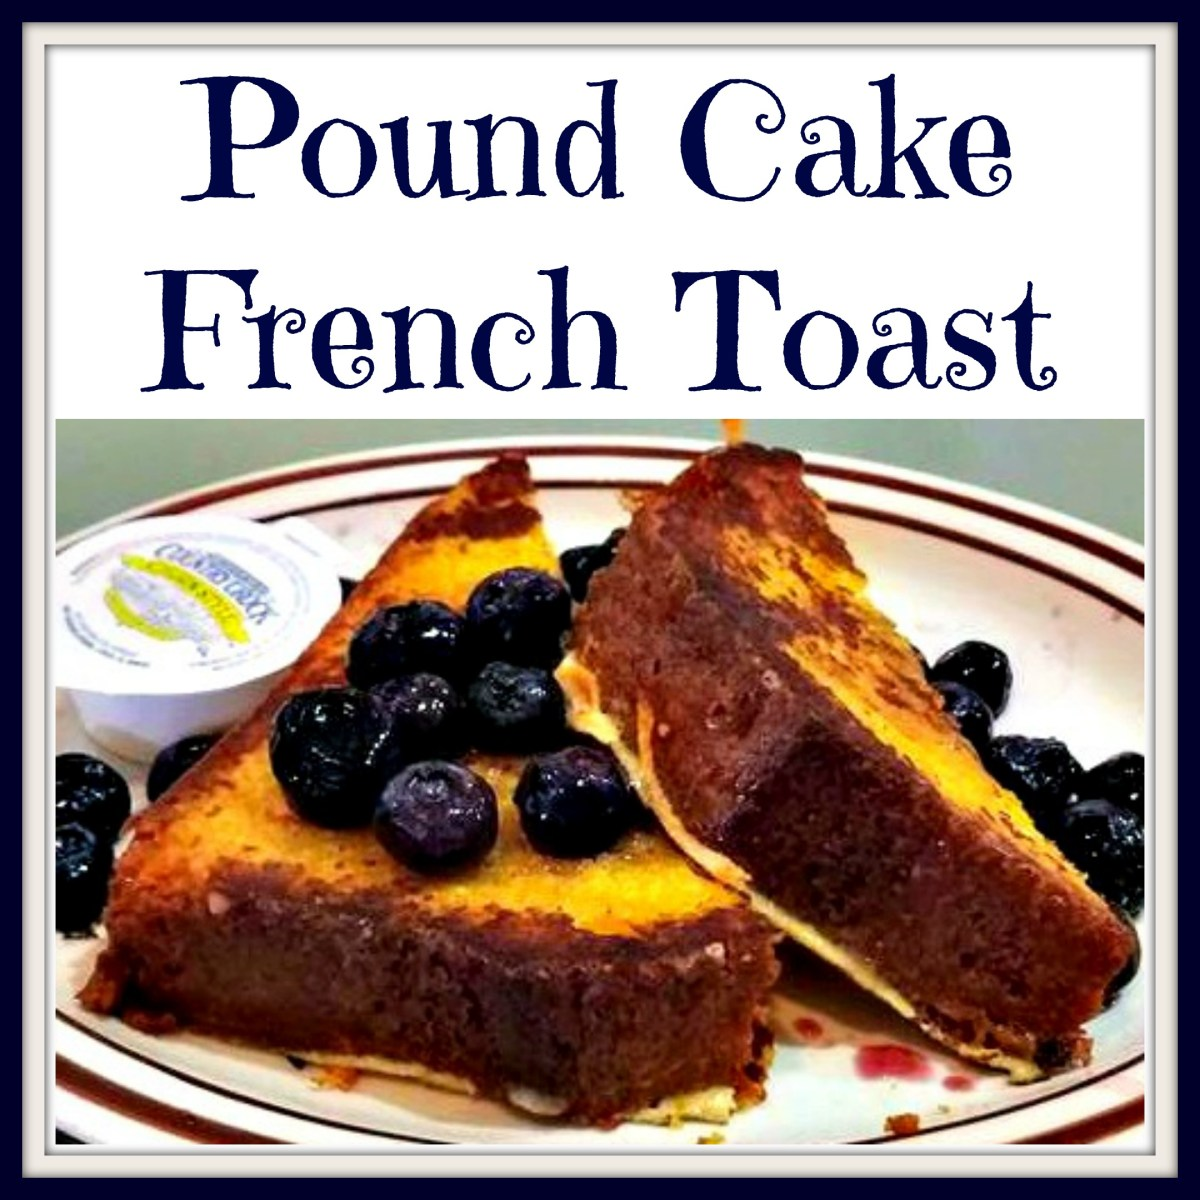 Pound Cake French Toast